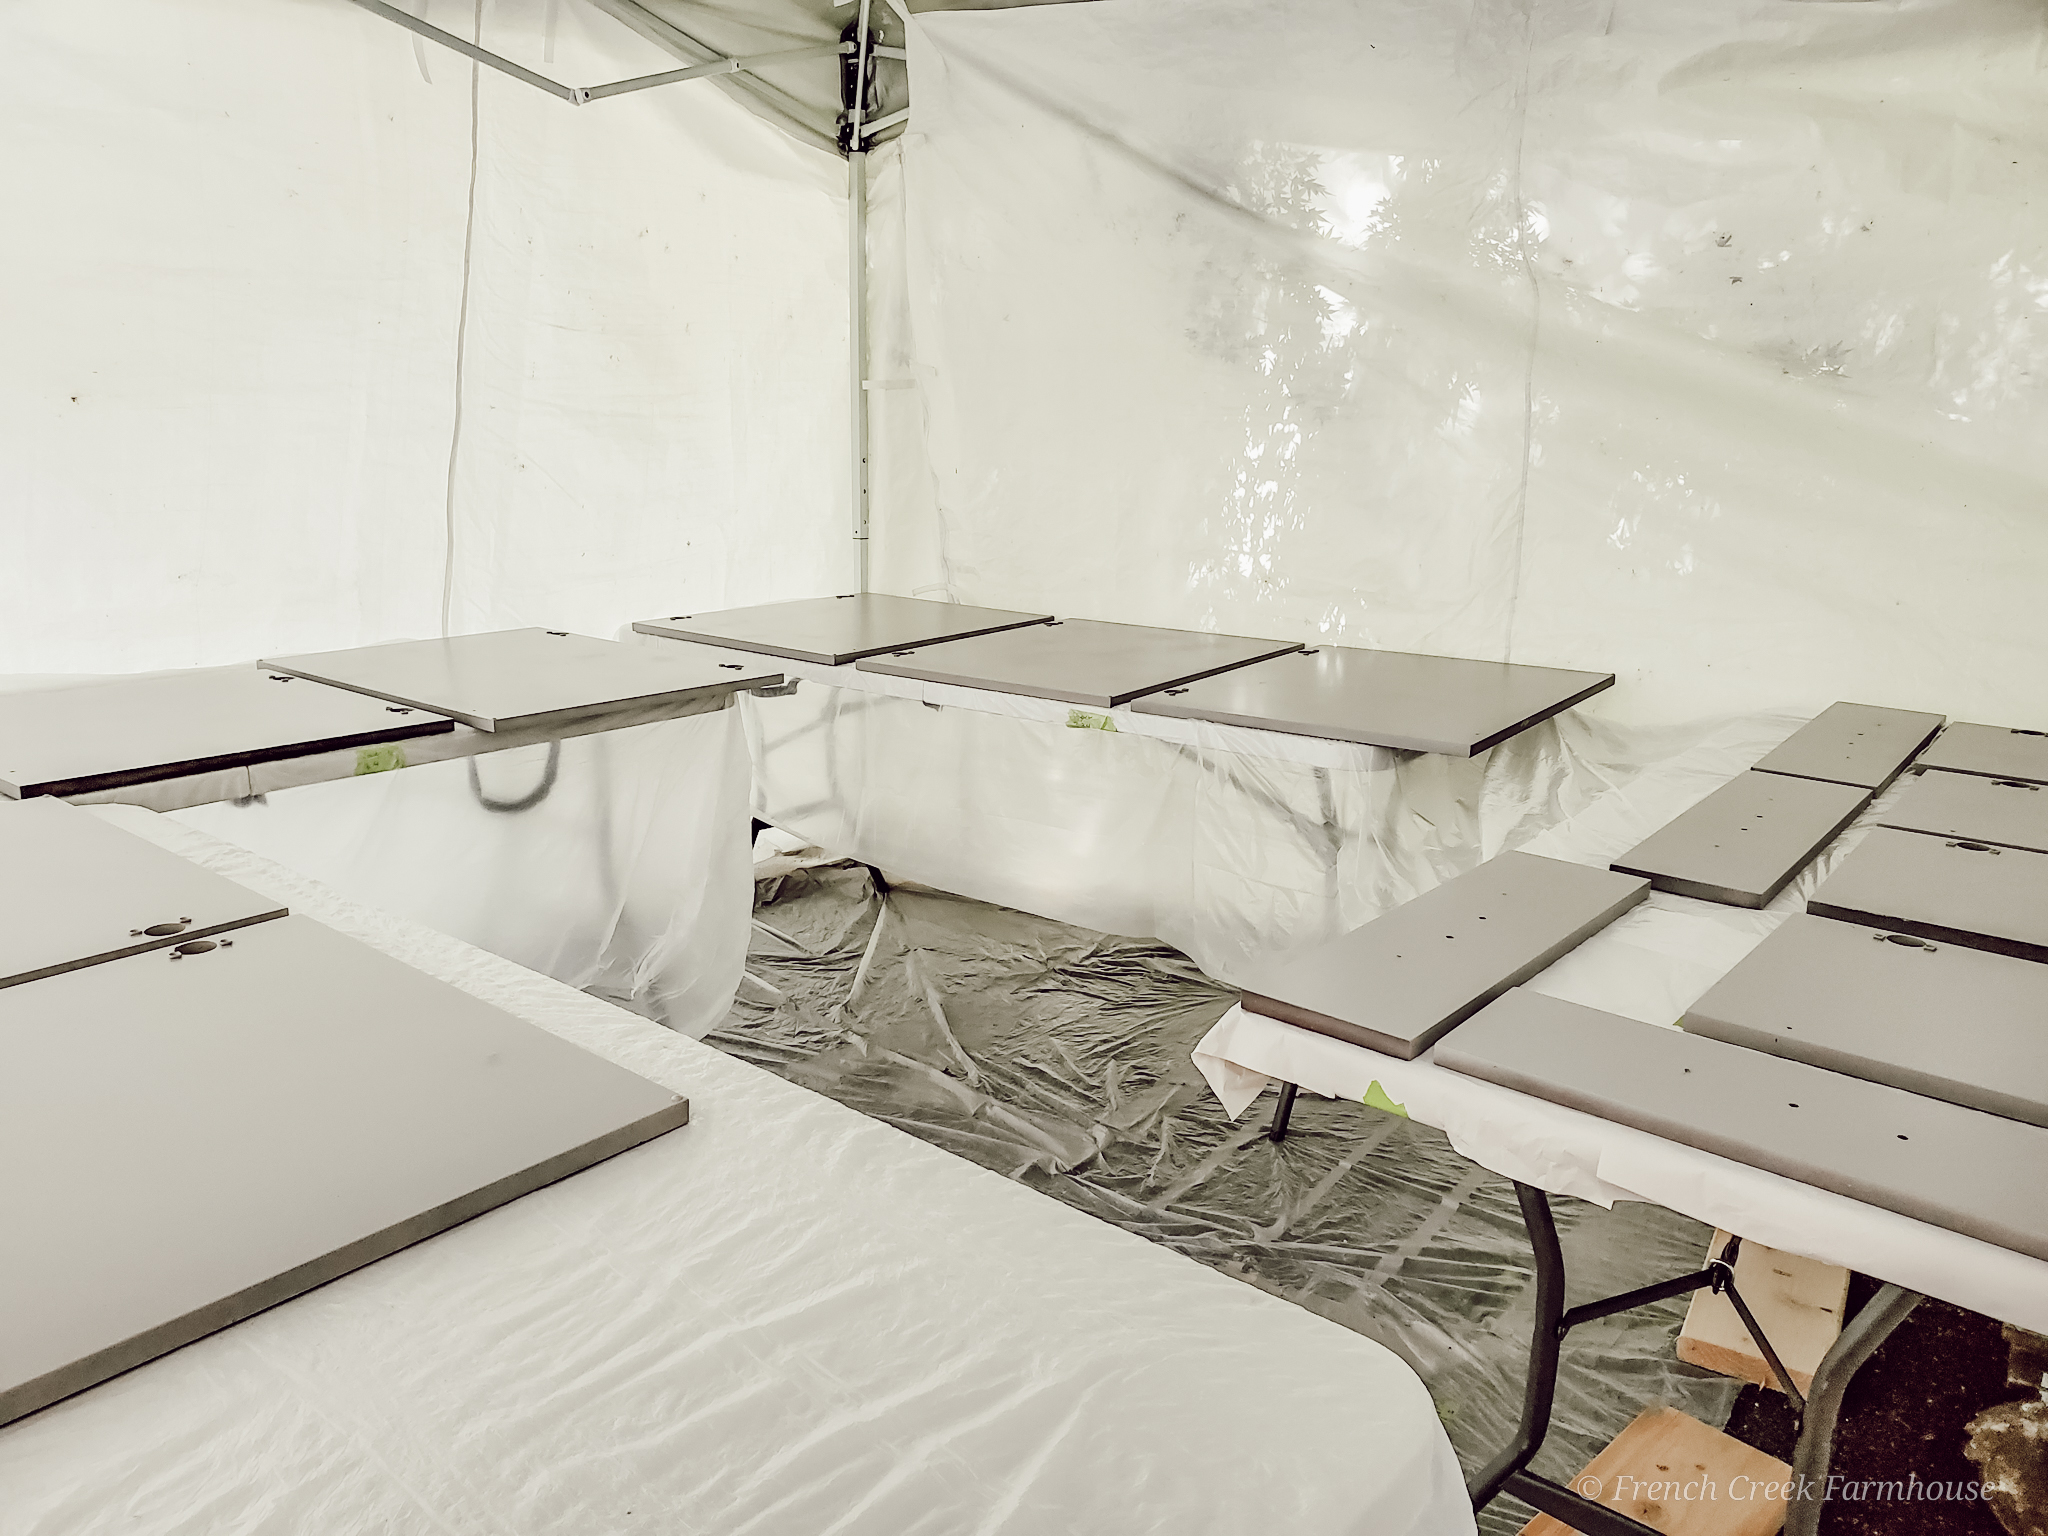 Using a 10x10 pop-up canopy is a simple way to create a paint booth